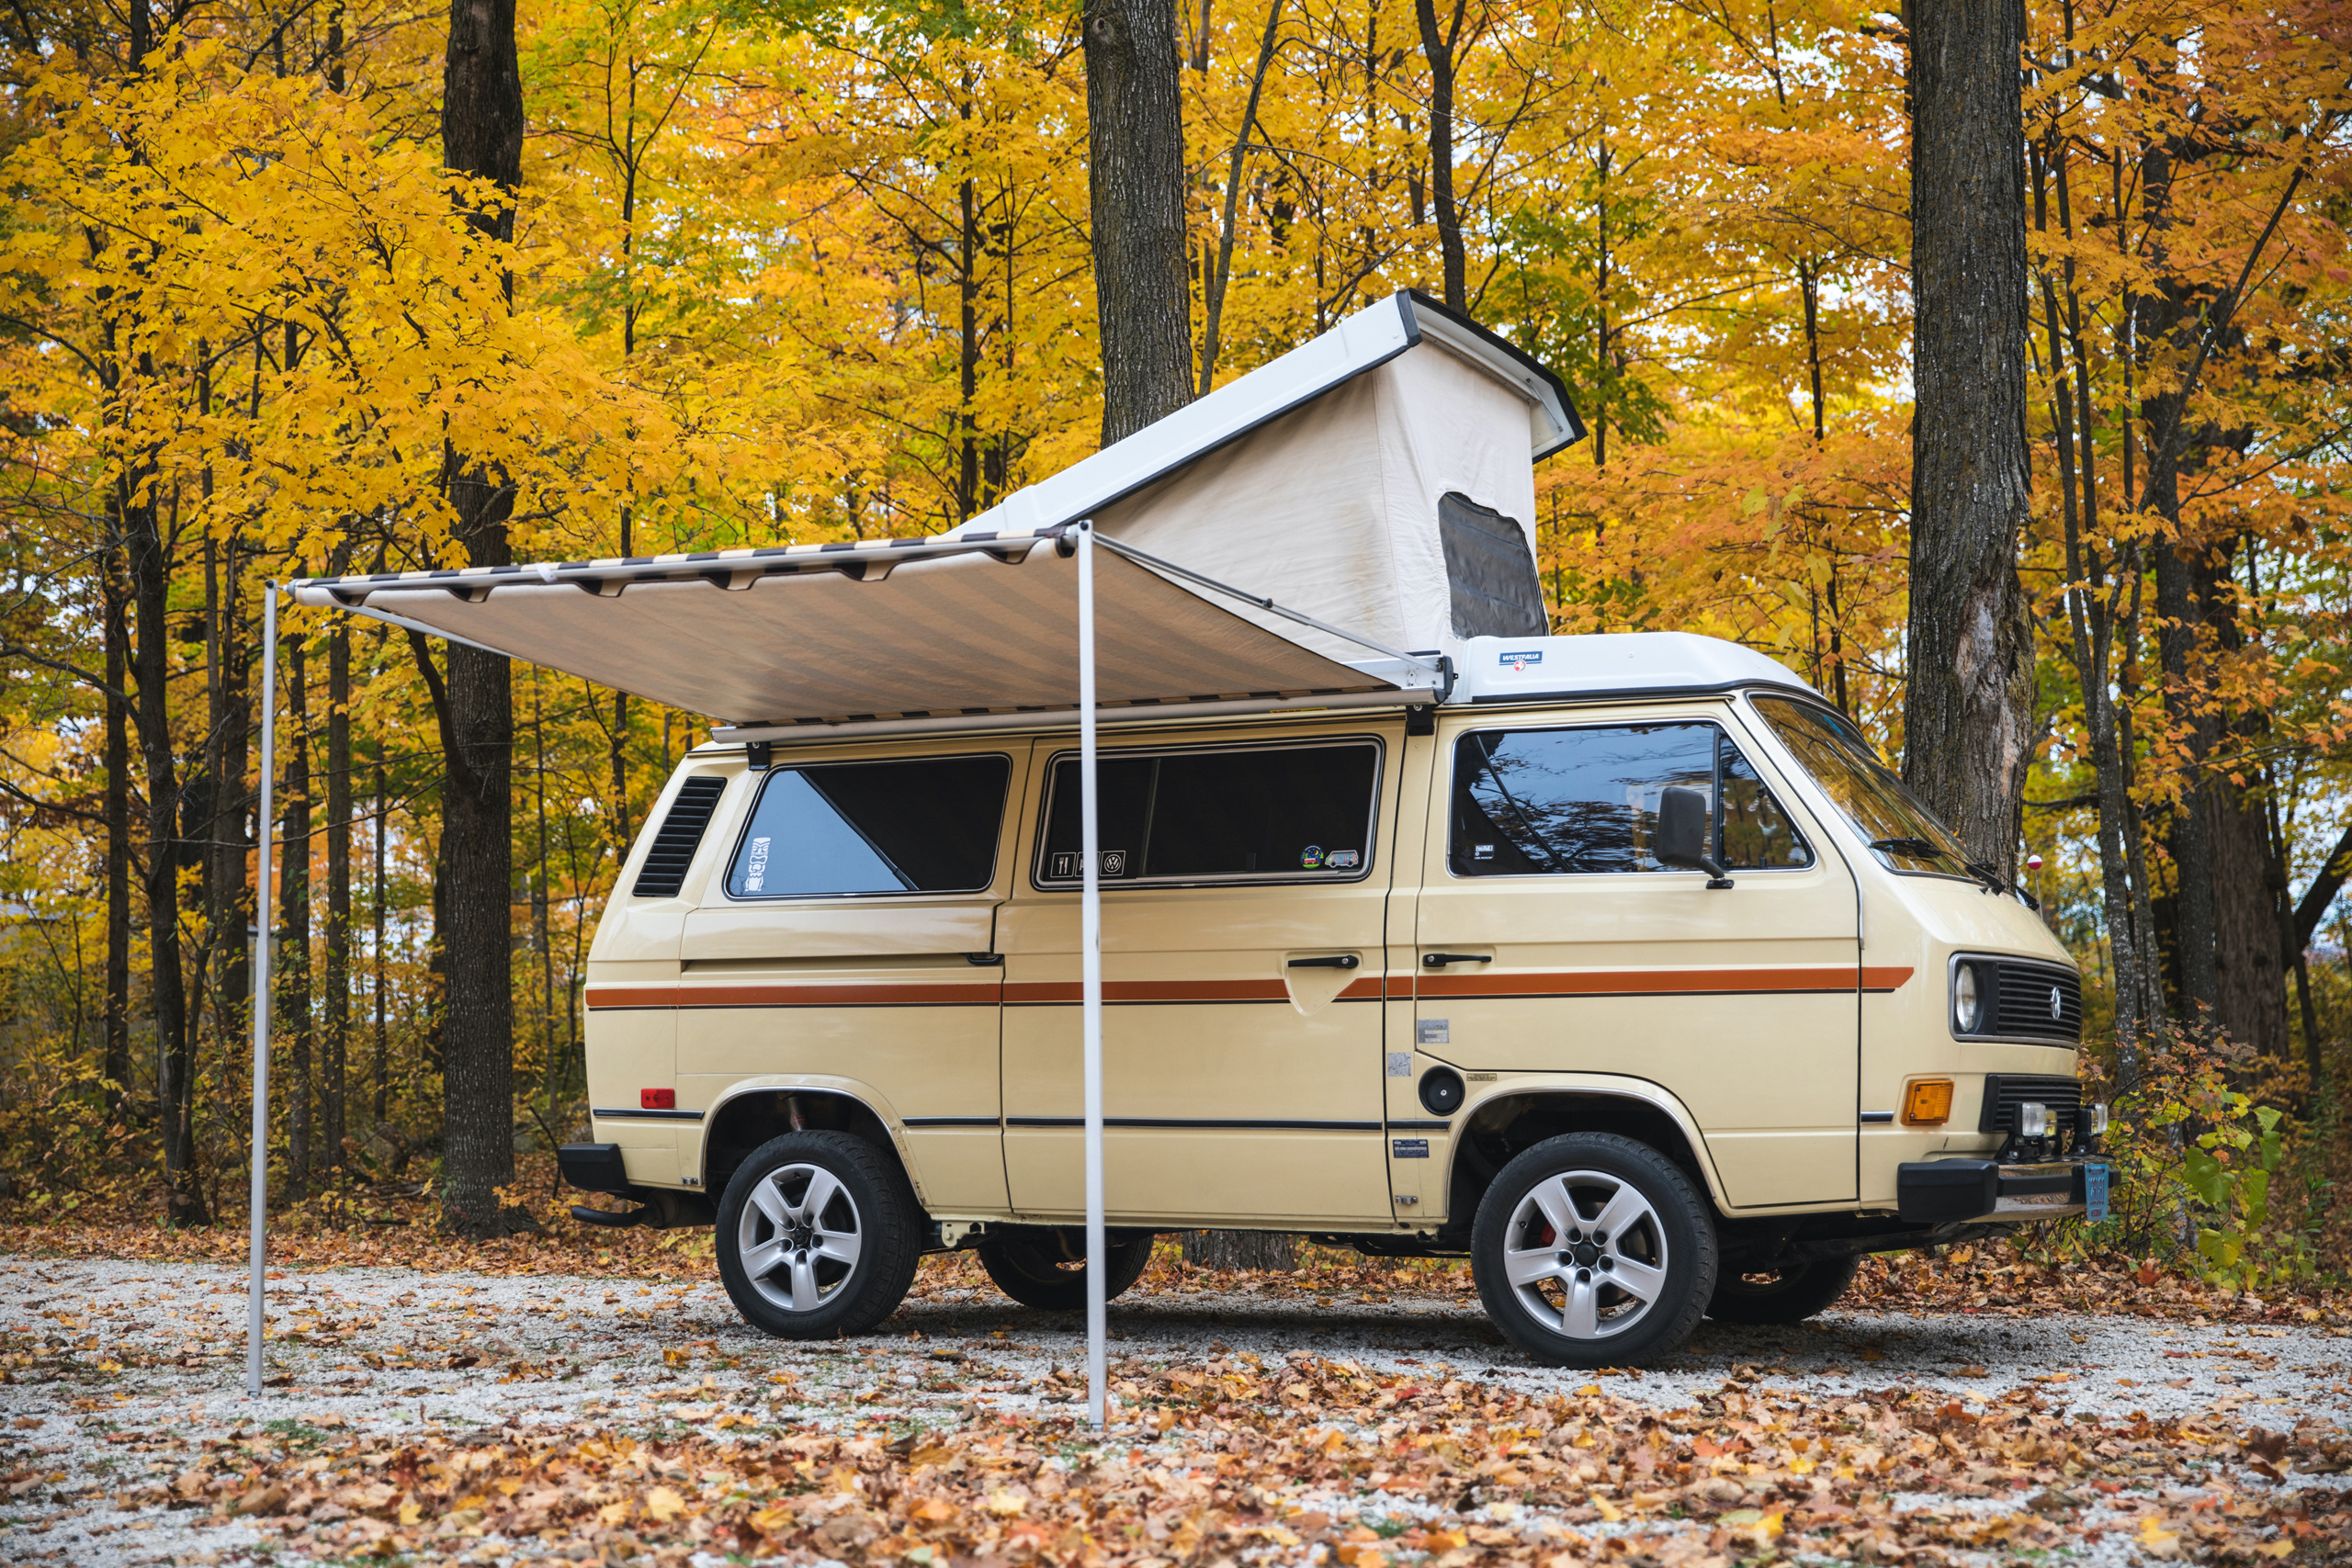 Volkswagen Vanagon top and awning out